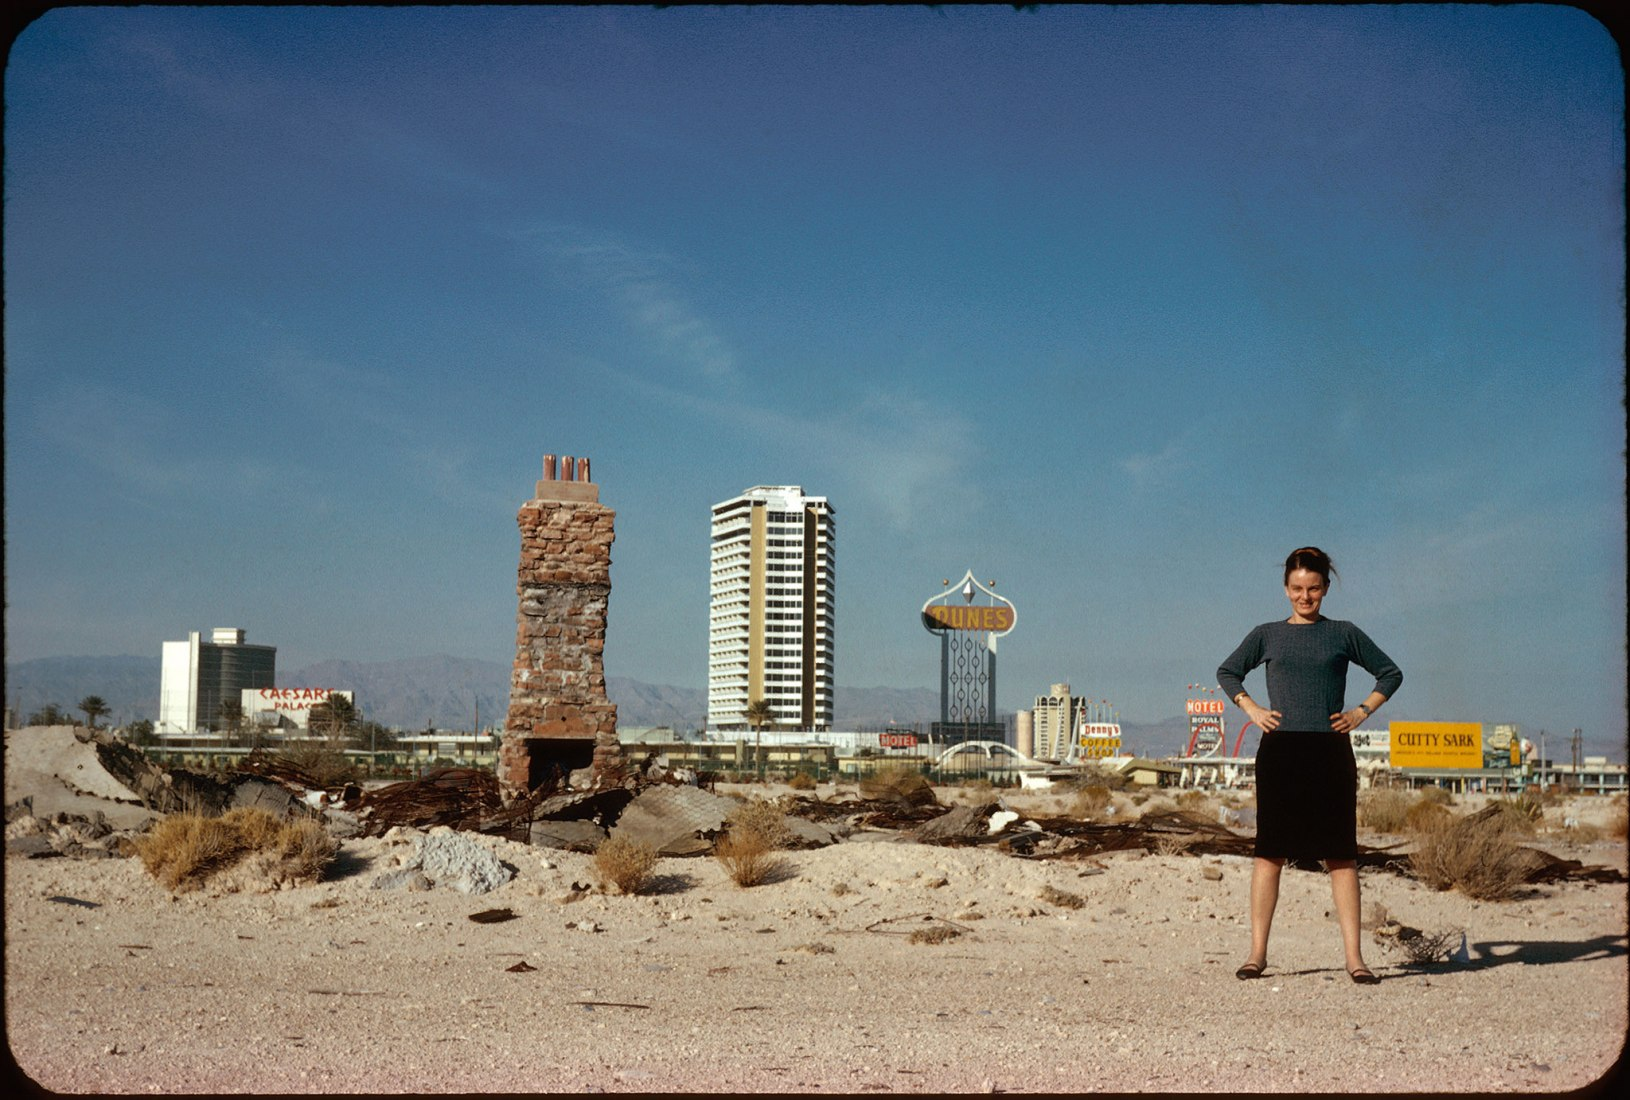 Scott Brown en las afueras de Las Vegas en 1966, fotografía de la revista Archives de Robert Venturi y Denise Scott Brown. Denise Scott Brown fotografiada por Frank Hanswijk.